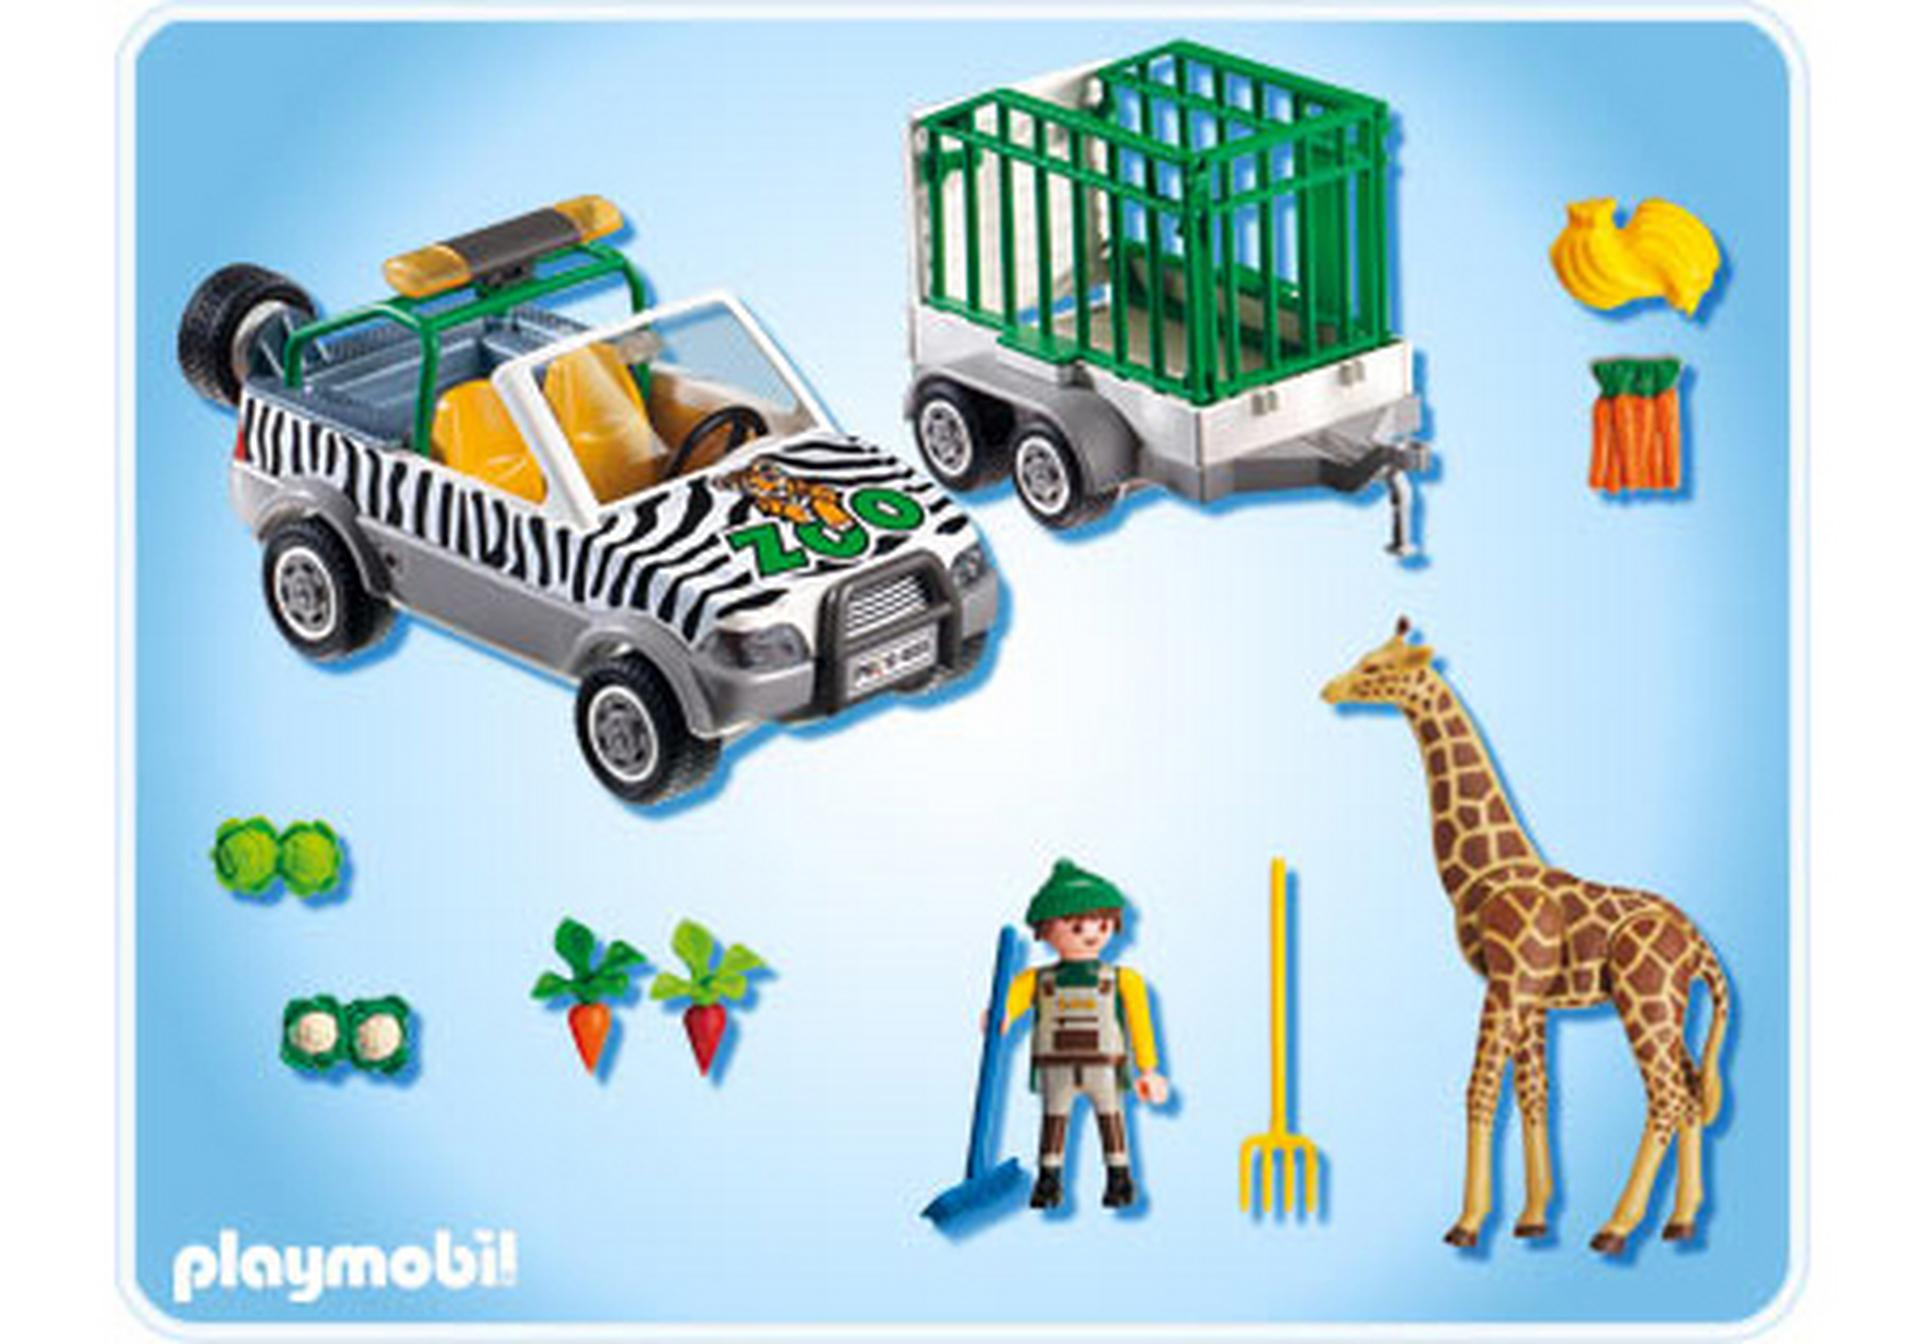 zoo fahrzeug mit anh nger 4855 a playmobil deutschland. Black Bedroom Furniture Sets. Home Design Ideas